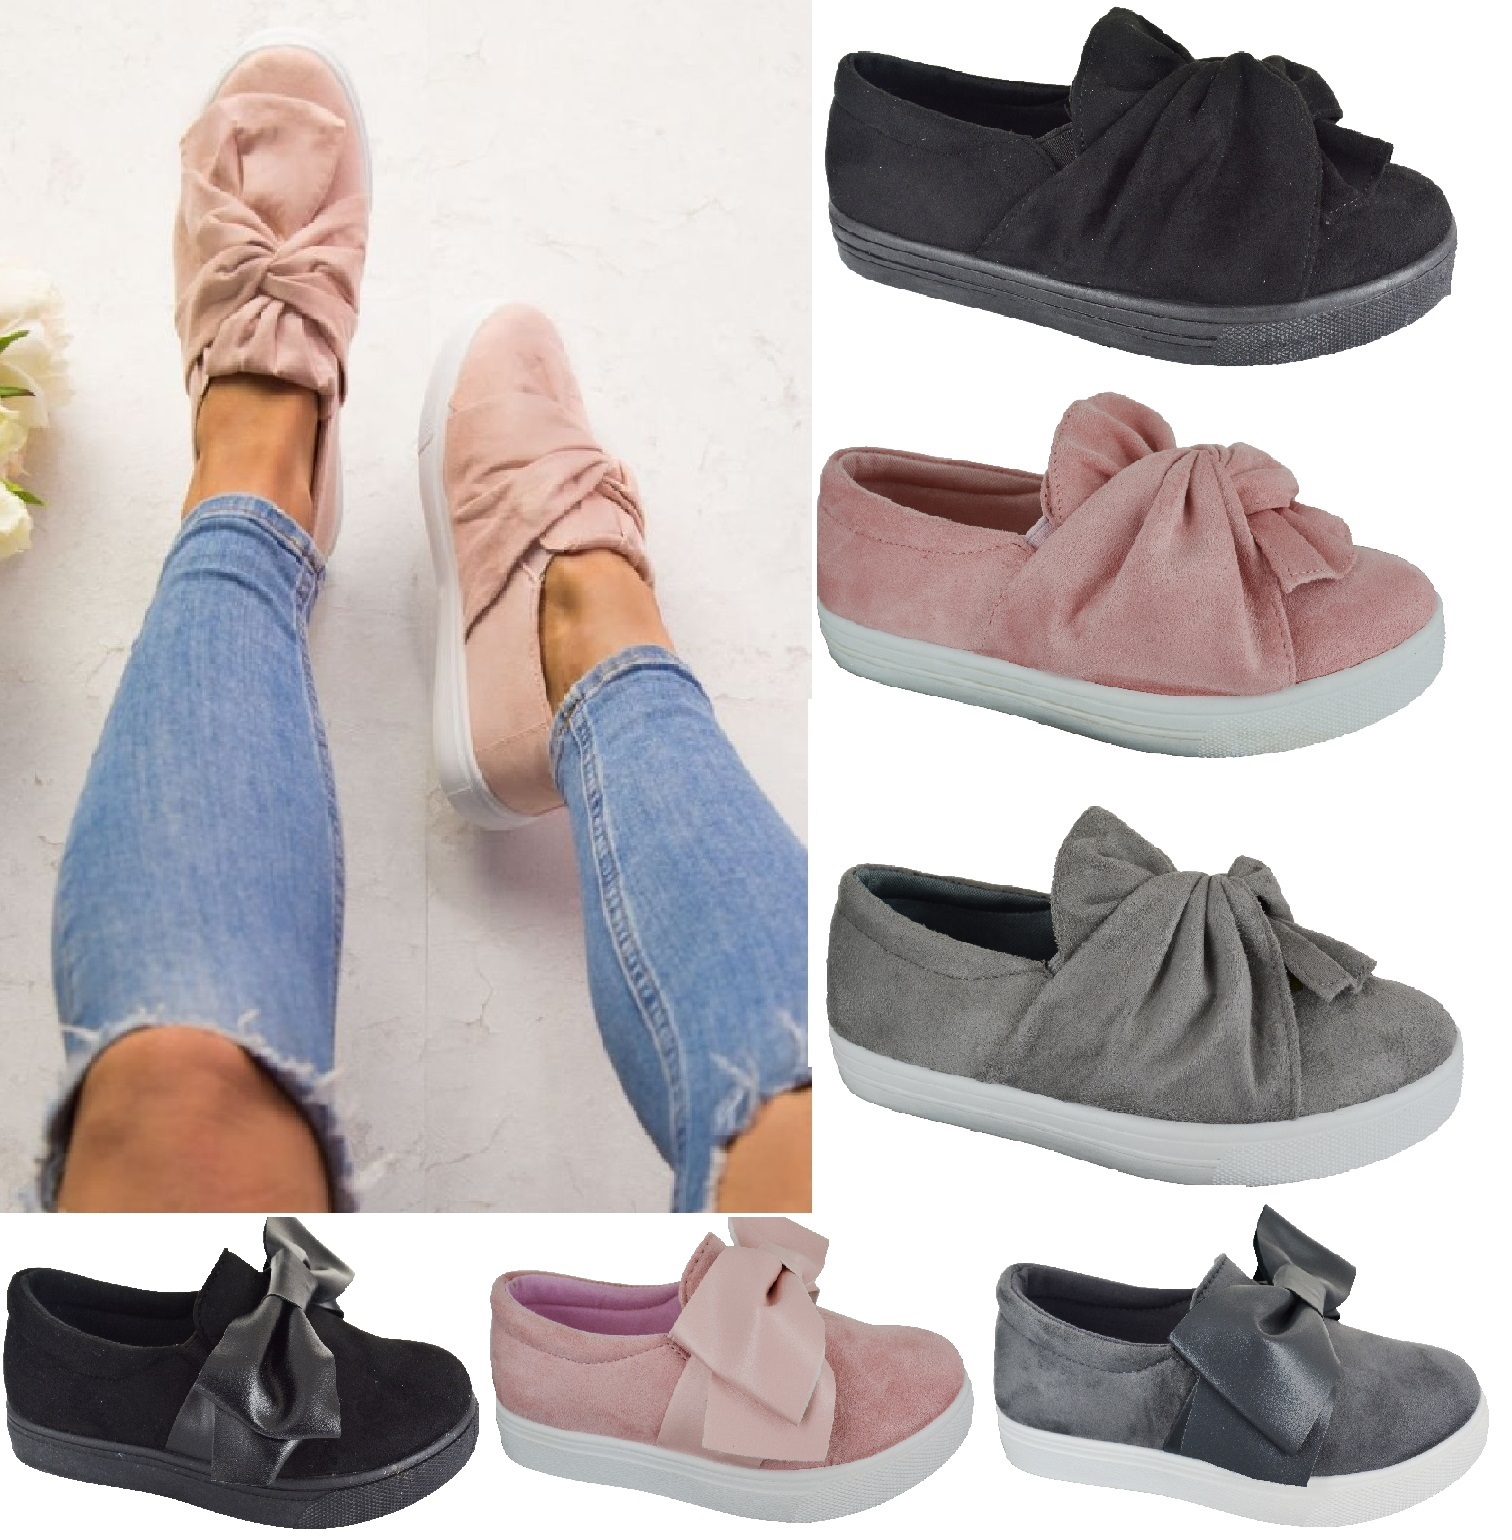 4a8ca9a68 Sentinel LADIES WOMENS FLAT FAUX SUEDE SLIP ON BOW TRAINERS SNEAKERS PUMPS  SHOES SIZE 3-8